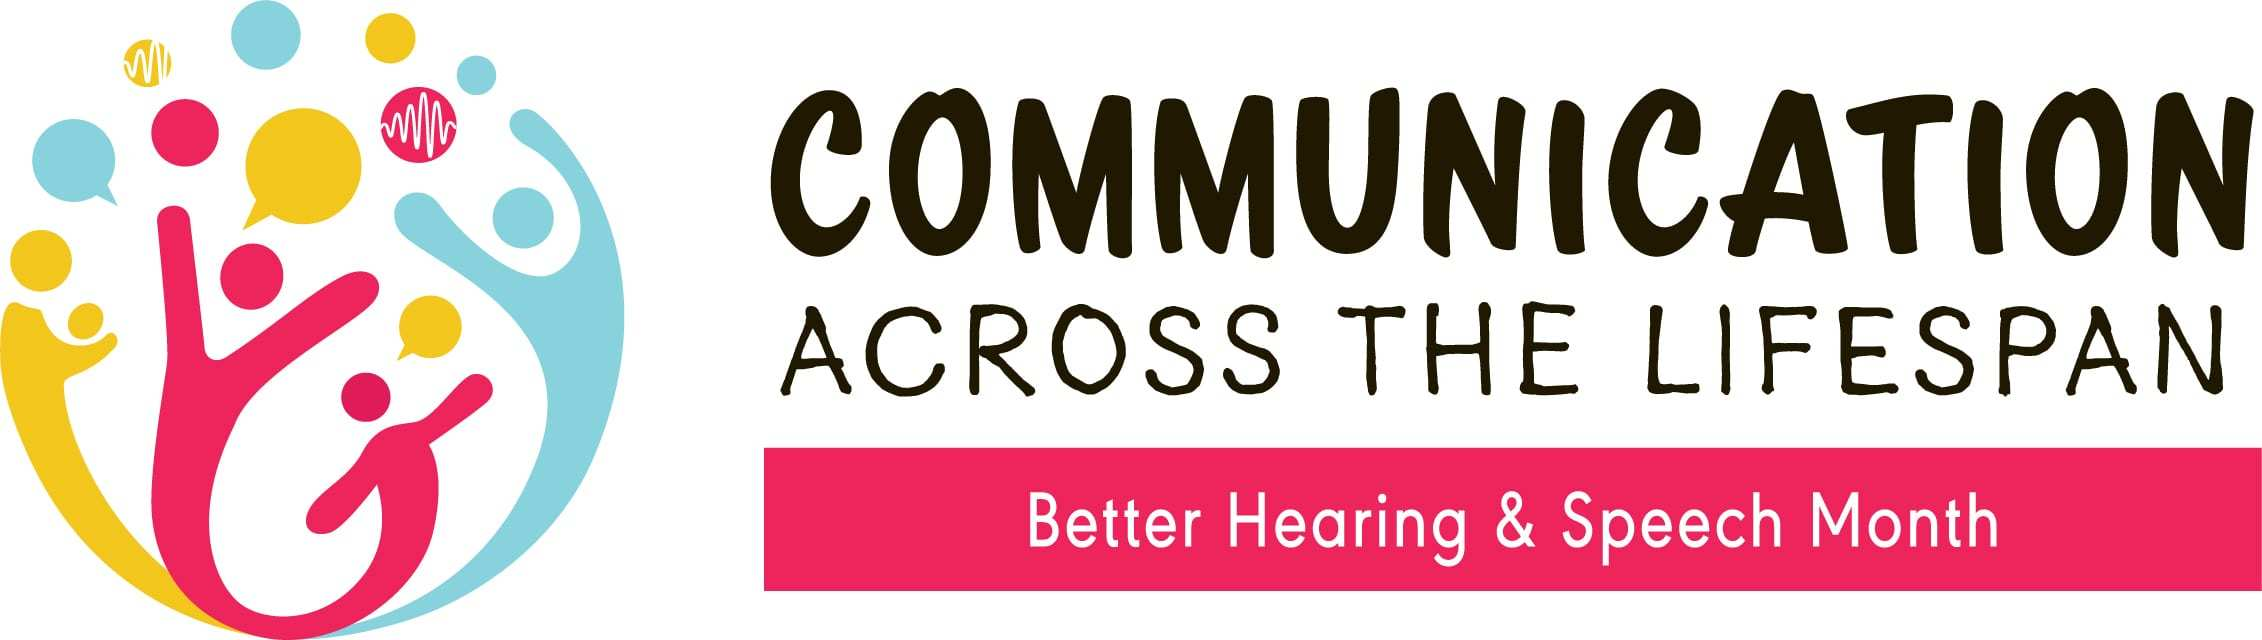 Better Hearing and Speech Month 2019 Logo